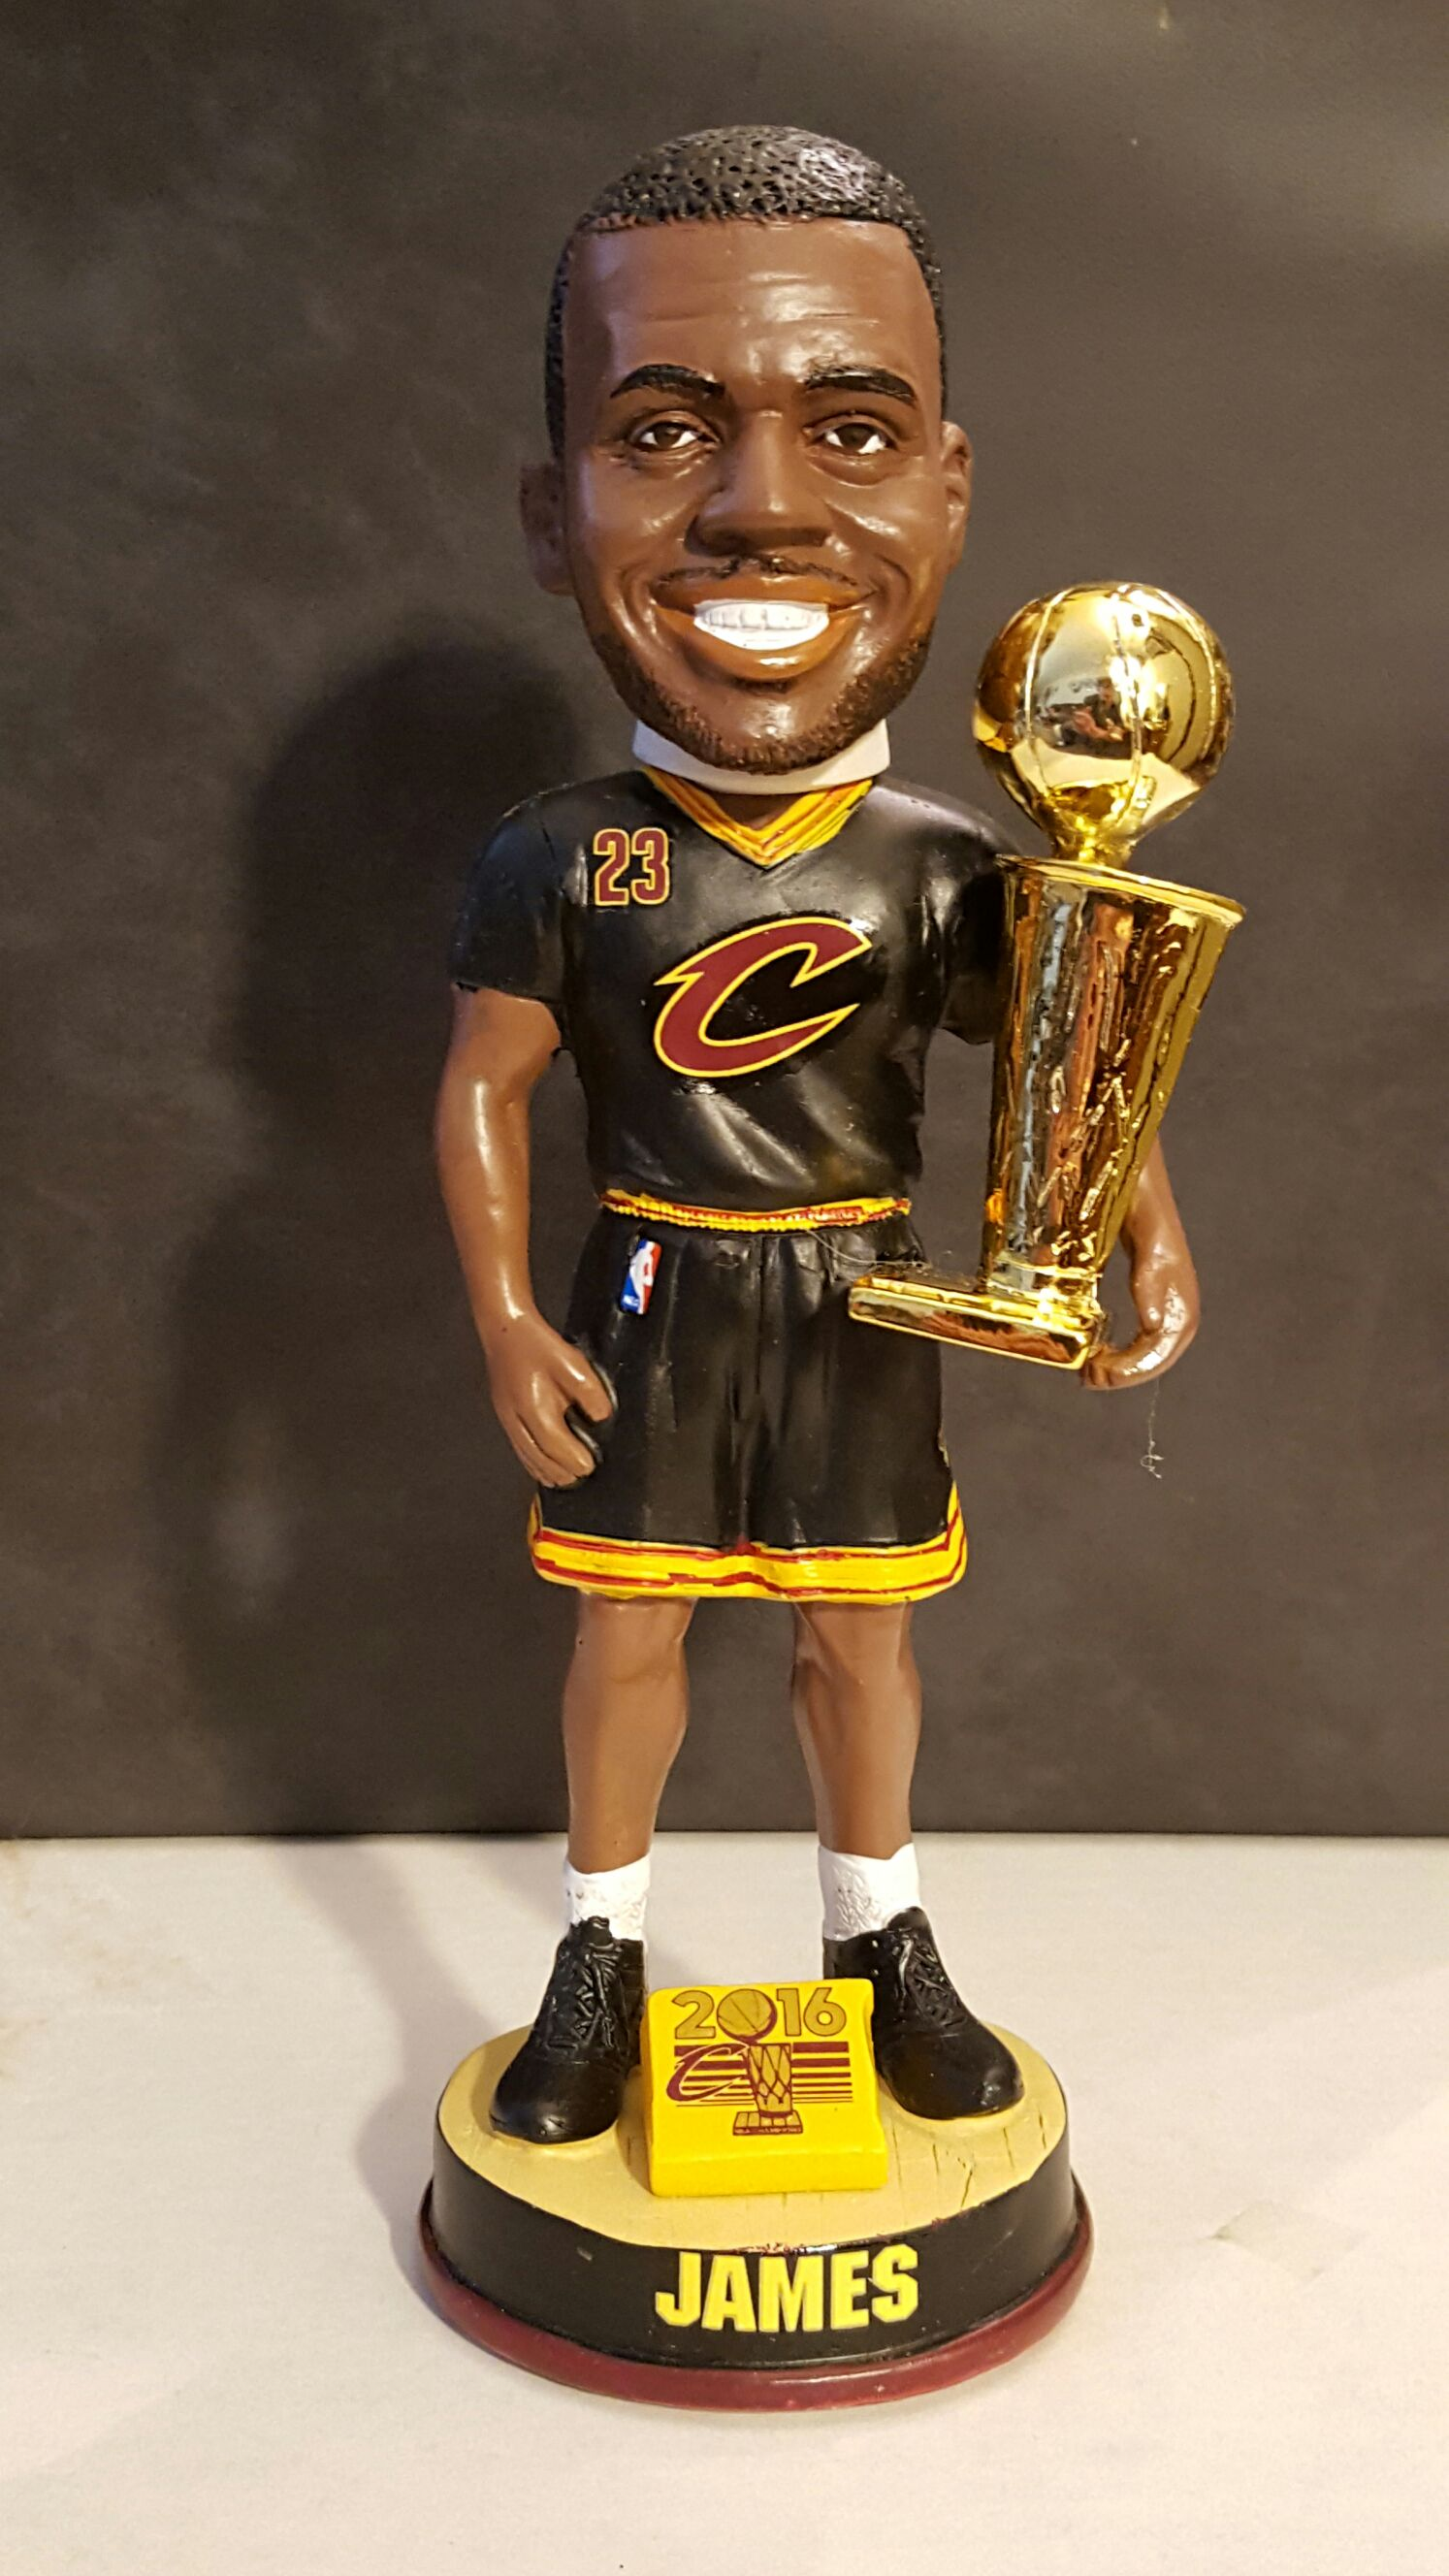 Lebron James Bobblehead - Basketball (2016) front image (front cover)